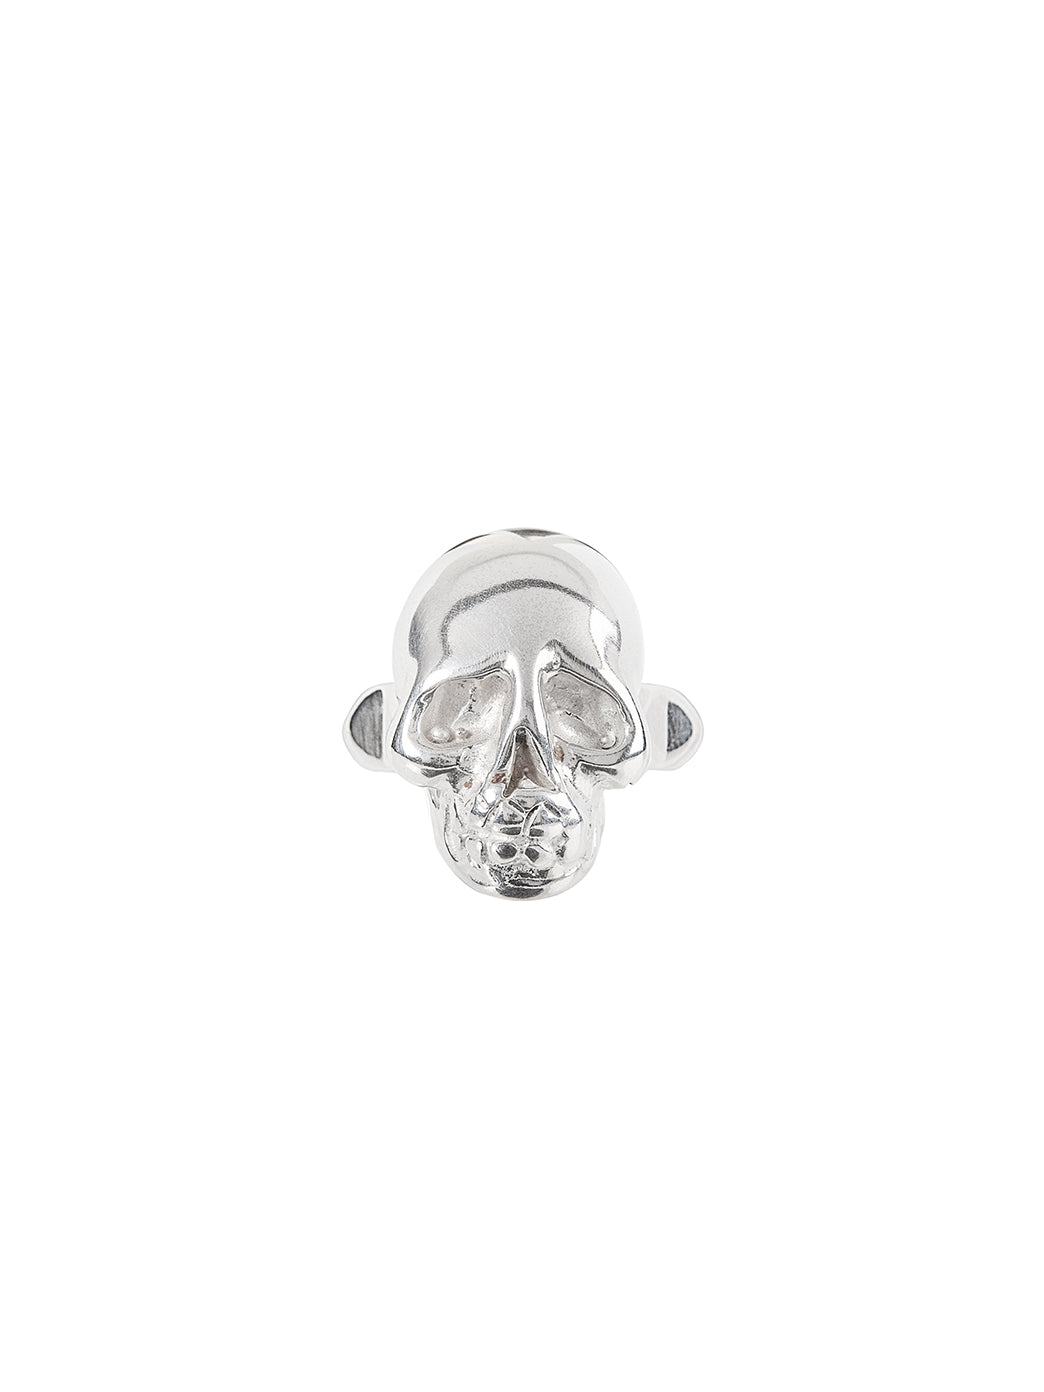 Fiorina Jewellery Gladiator Skull Ring